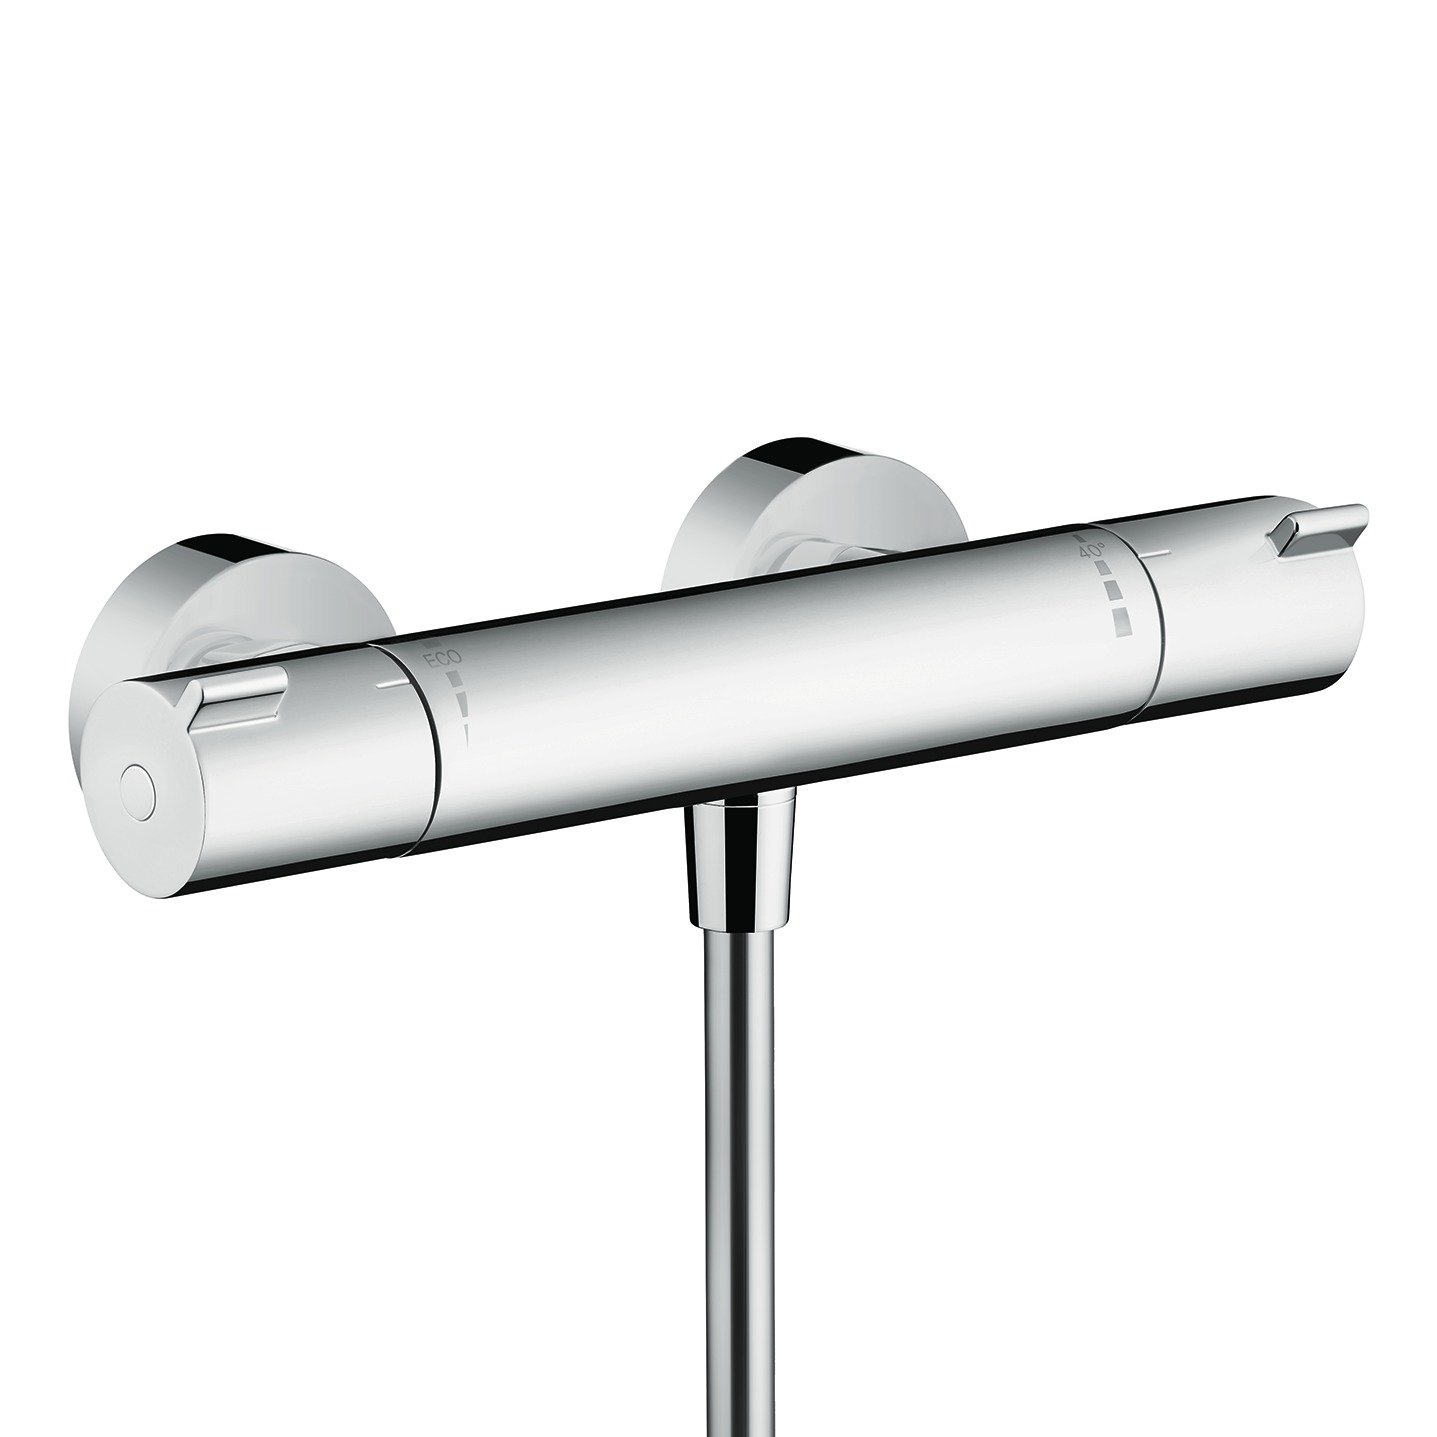 hansgrohe Ecostat 1001 CL thermostatic shower mixer, chrome 13211000